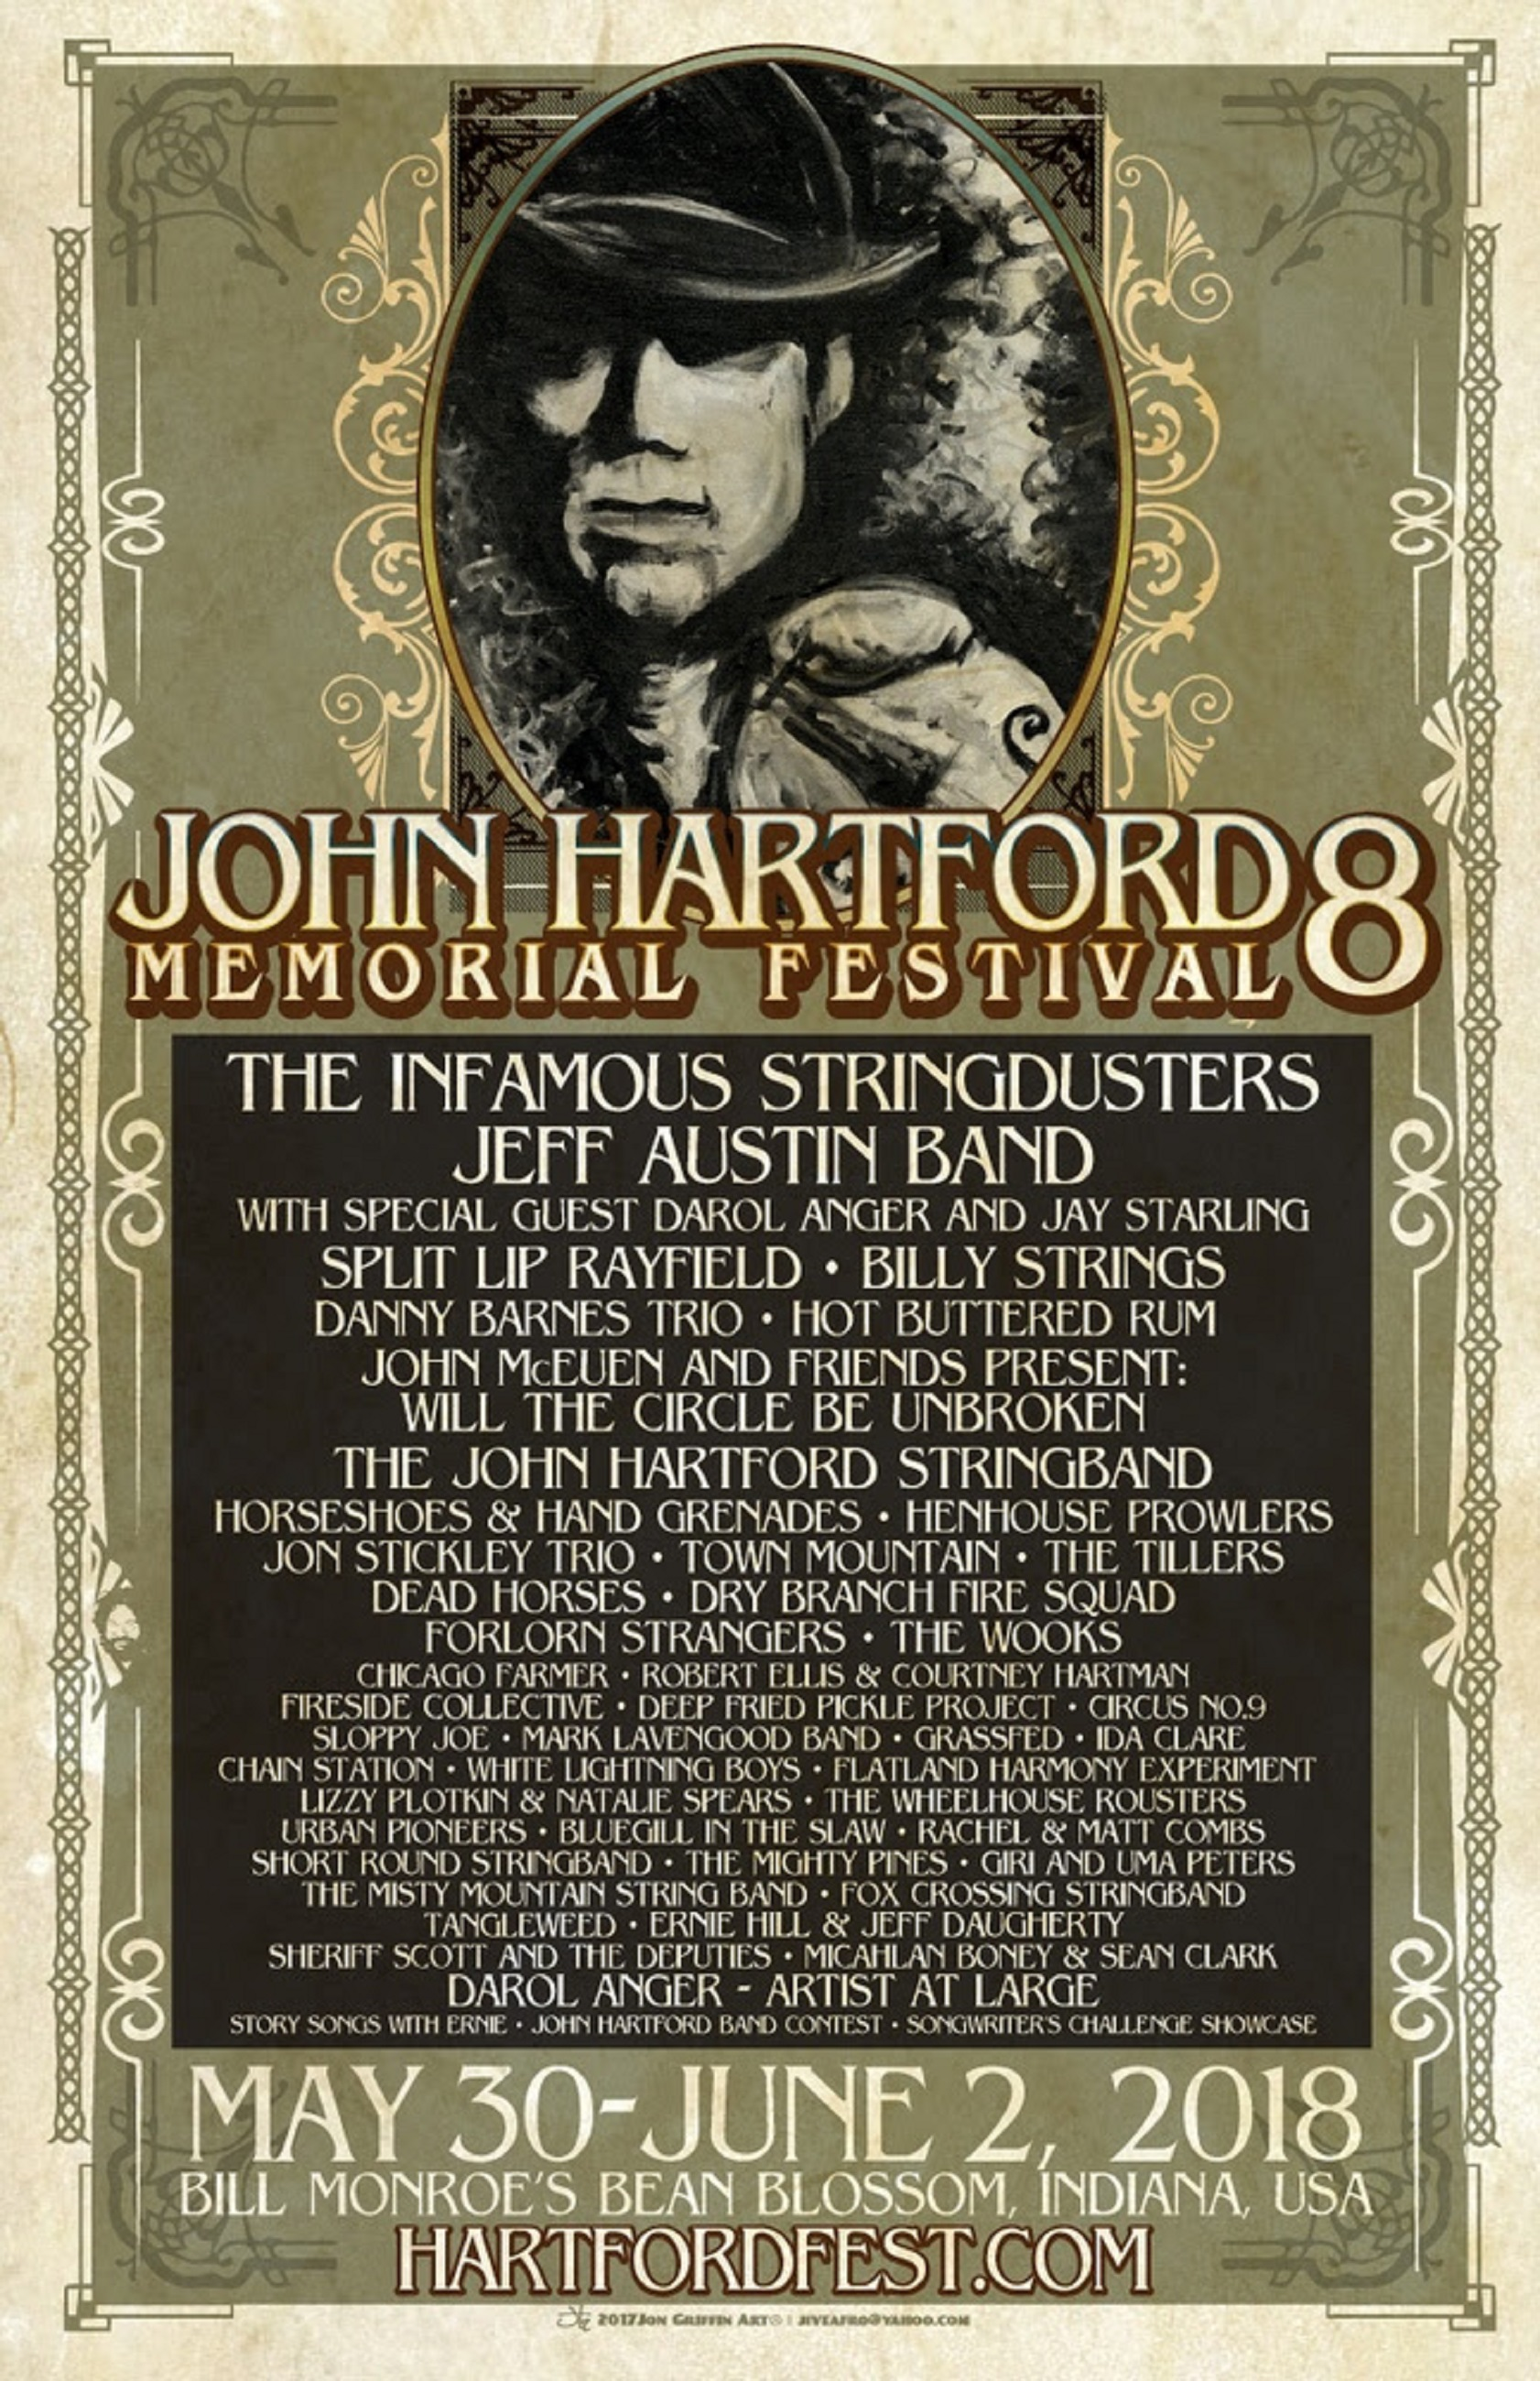 John Hartford Memorial Festival Announces 2018 Lineup!